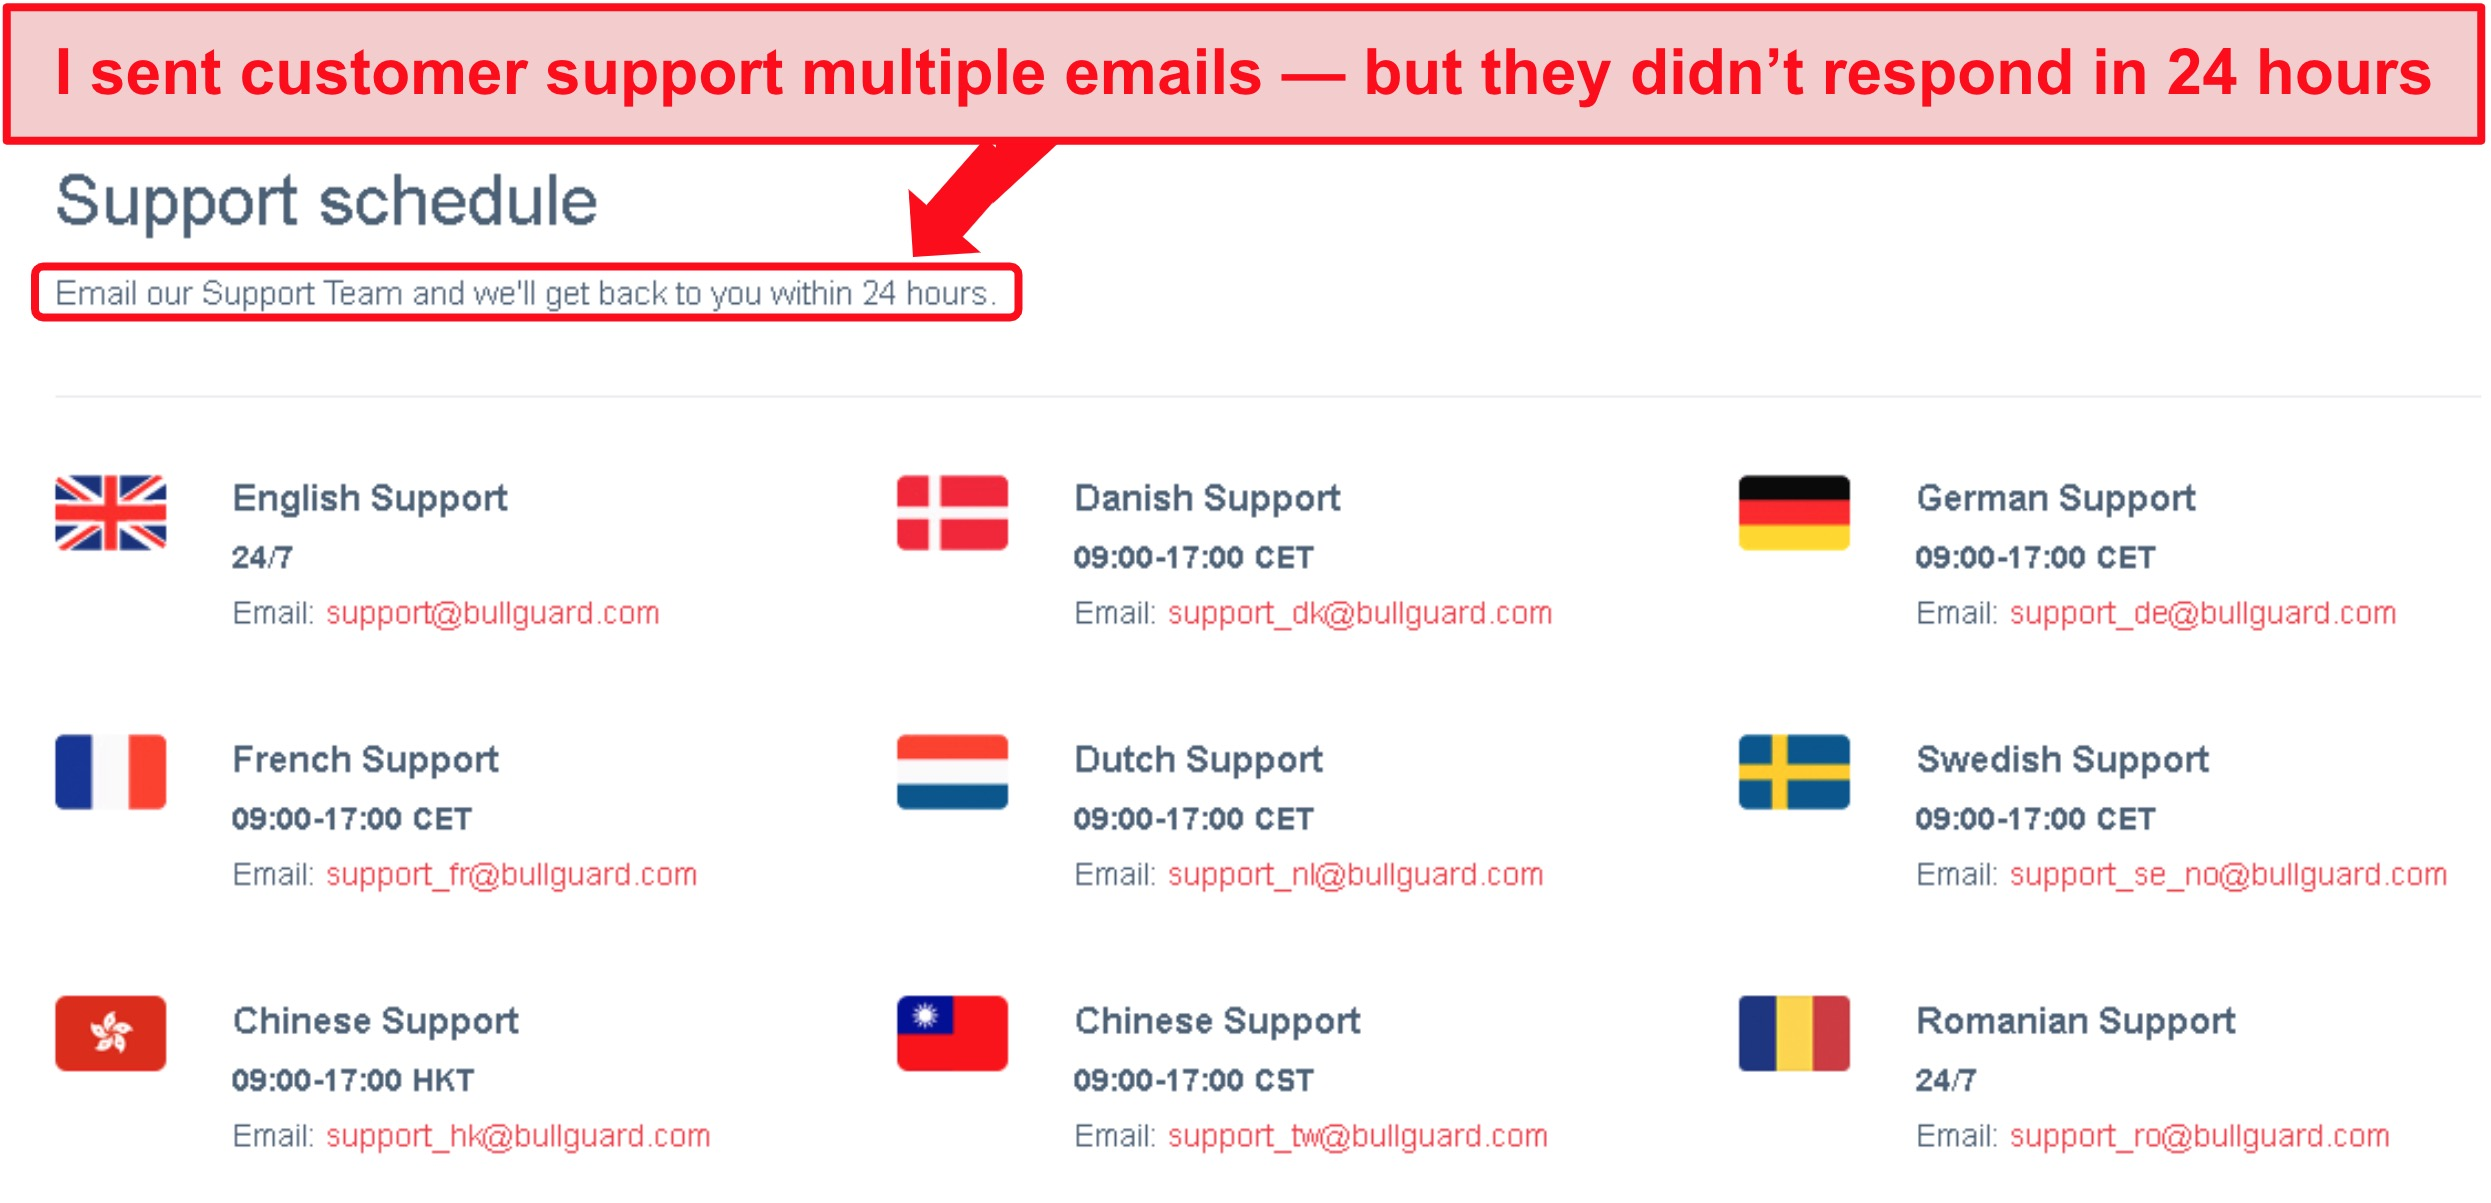 Screenshot of BullGuard's support schedule and 24-hour email promise that wasn't fulfilled